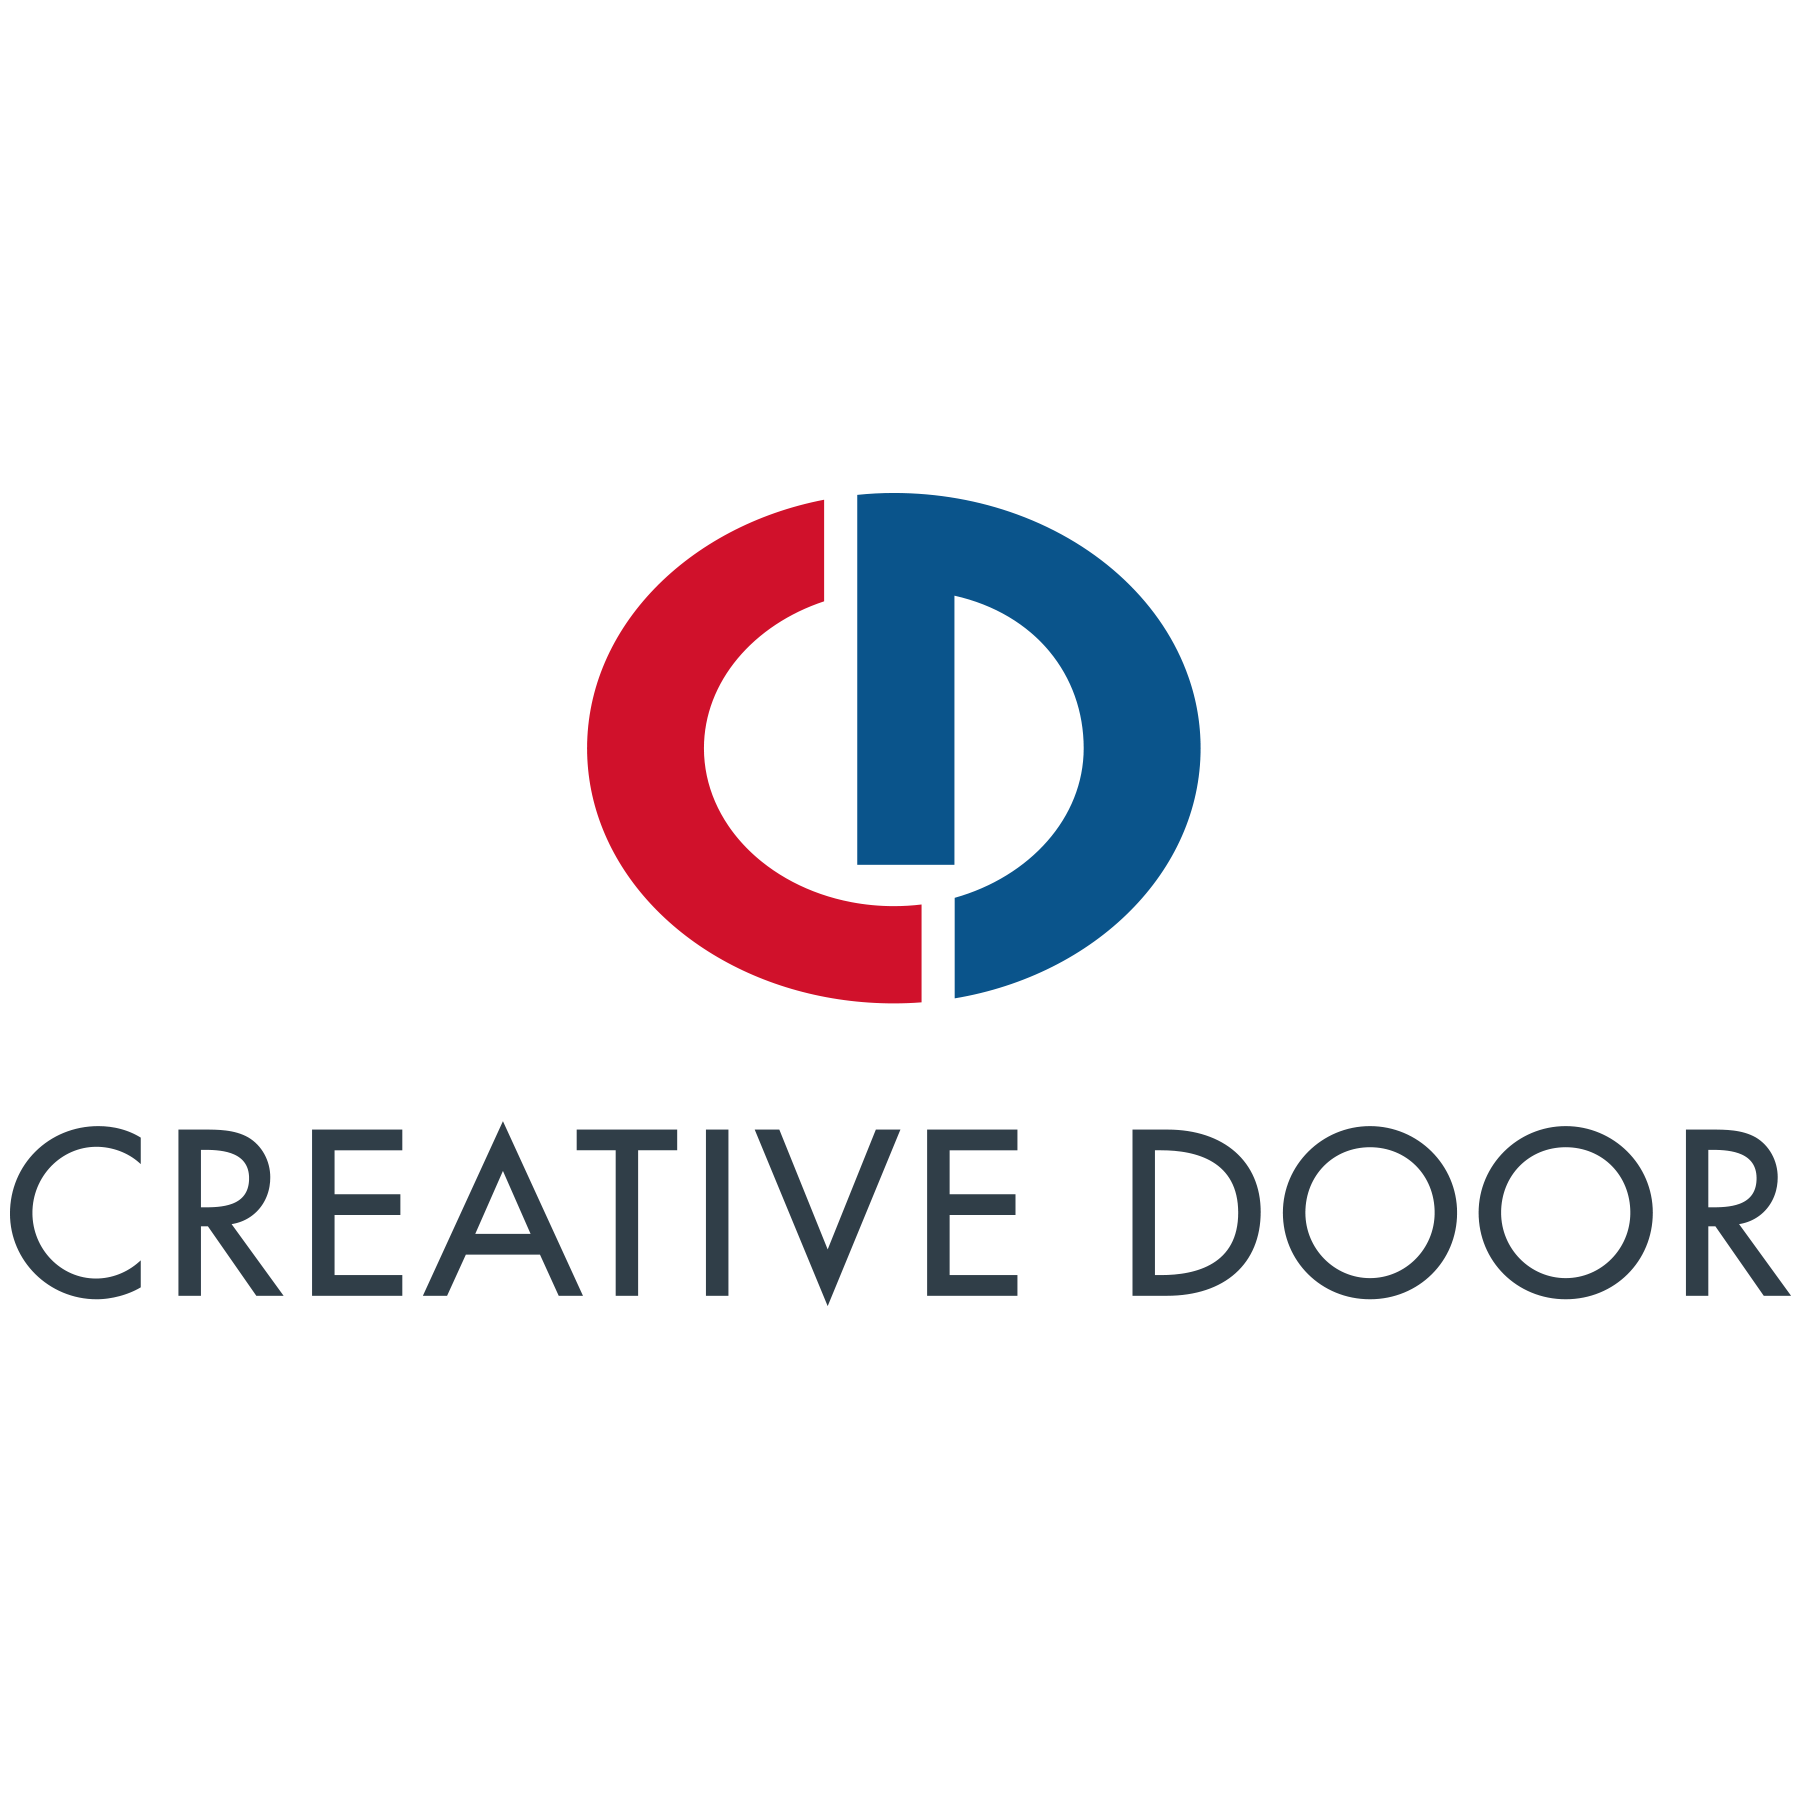 Creative Door - Kelowna Garage Door & Overhead Door Specialists